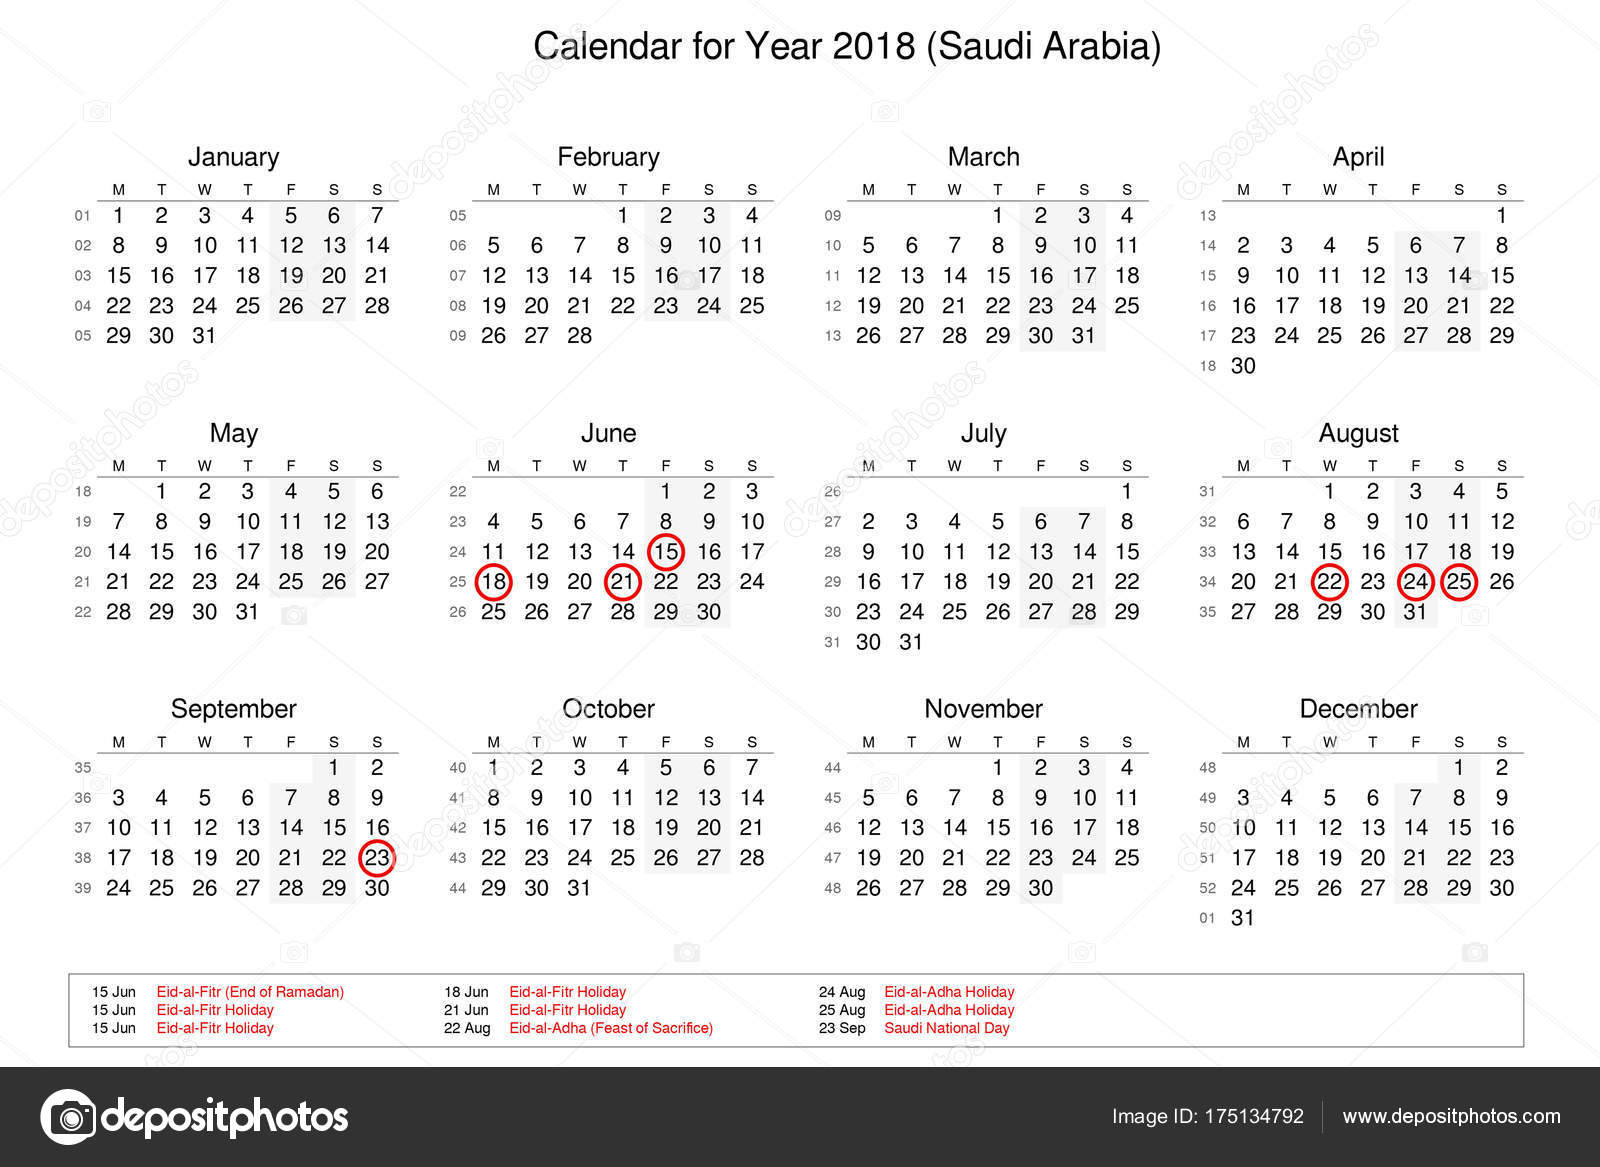 Popular Year Eid Al-Fitr 2018 - depositphotos_175134792-stock-photo-calendar-of-year-2018-with  You Should Have_414149 .jpg